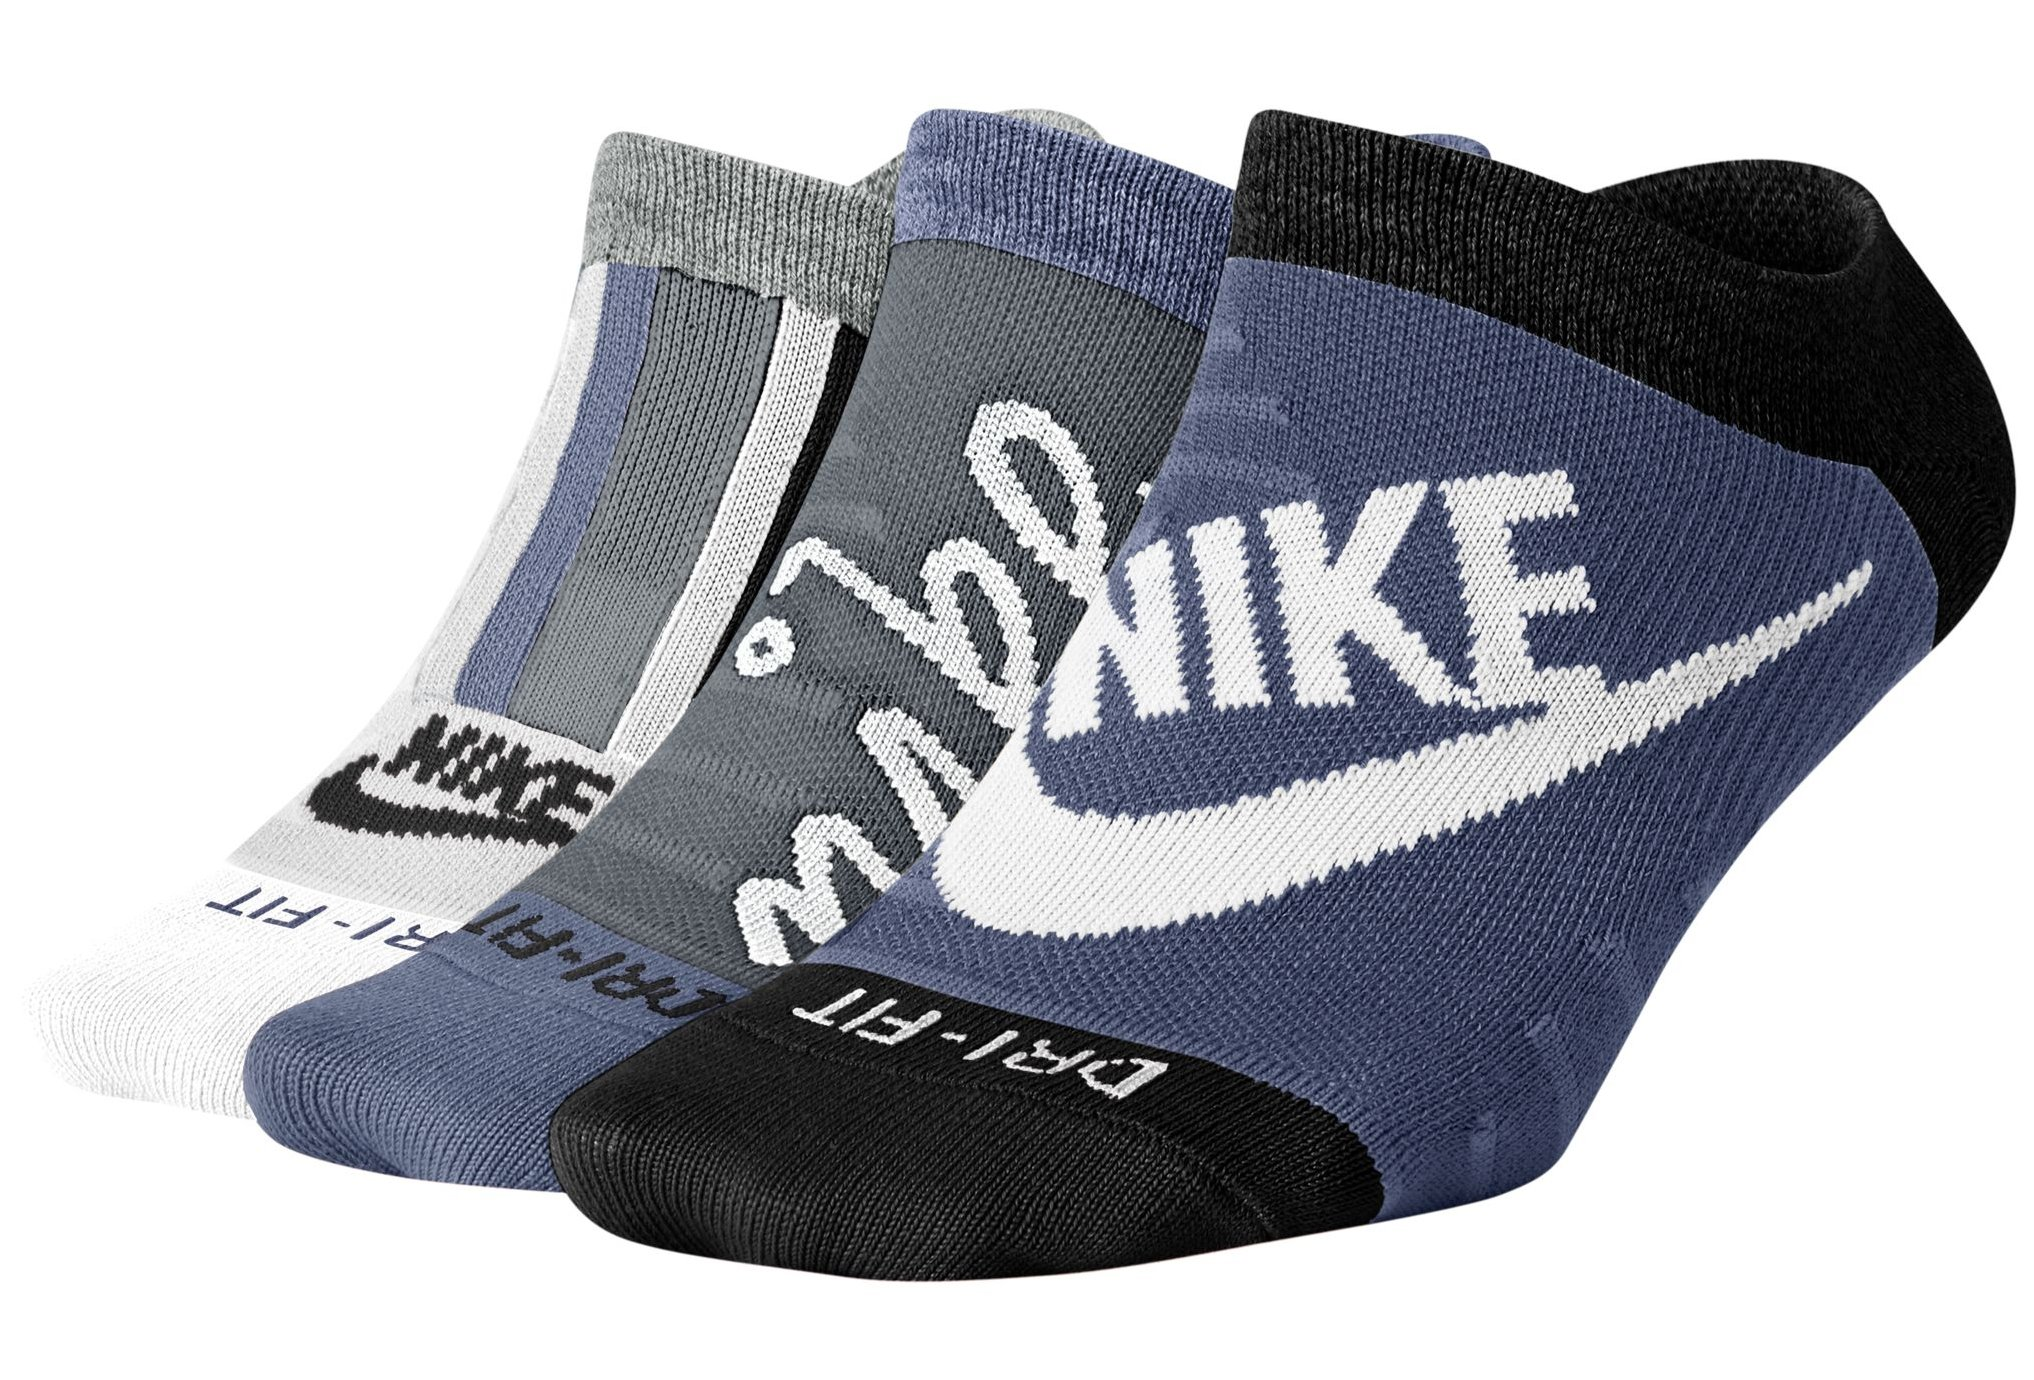 Nike 3 paires Everyday Max Cushion Crew W Chaussettes